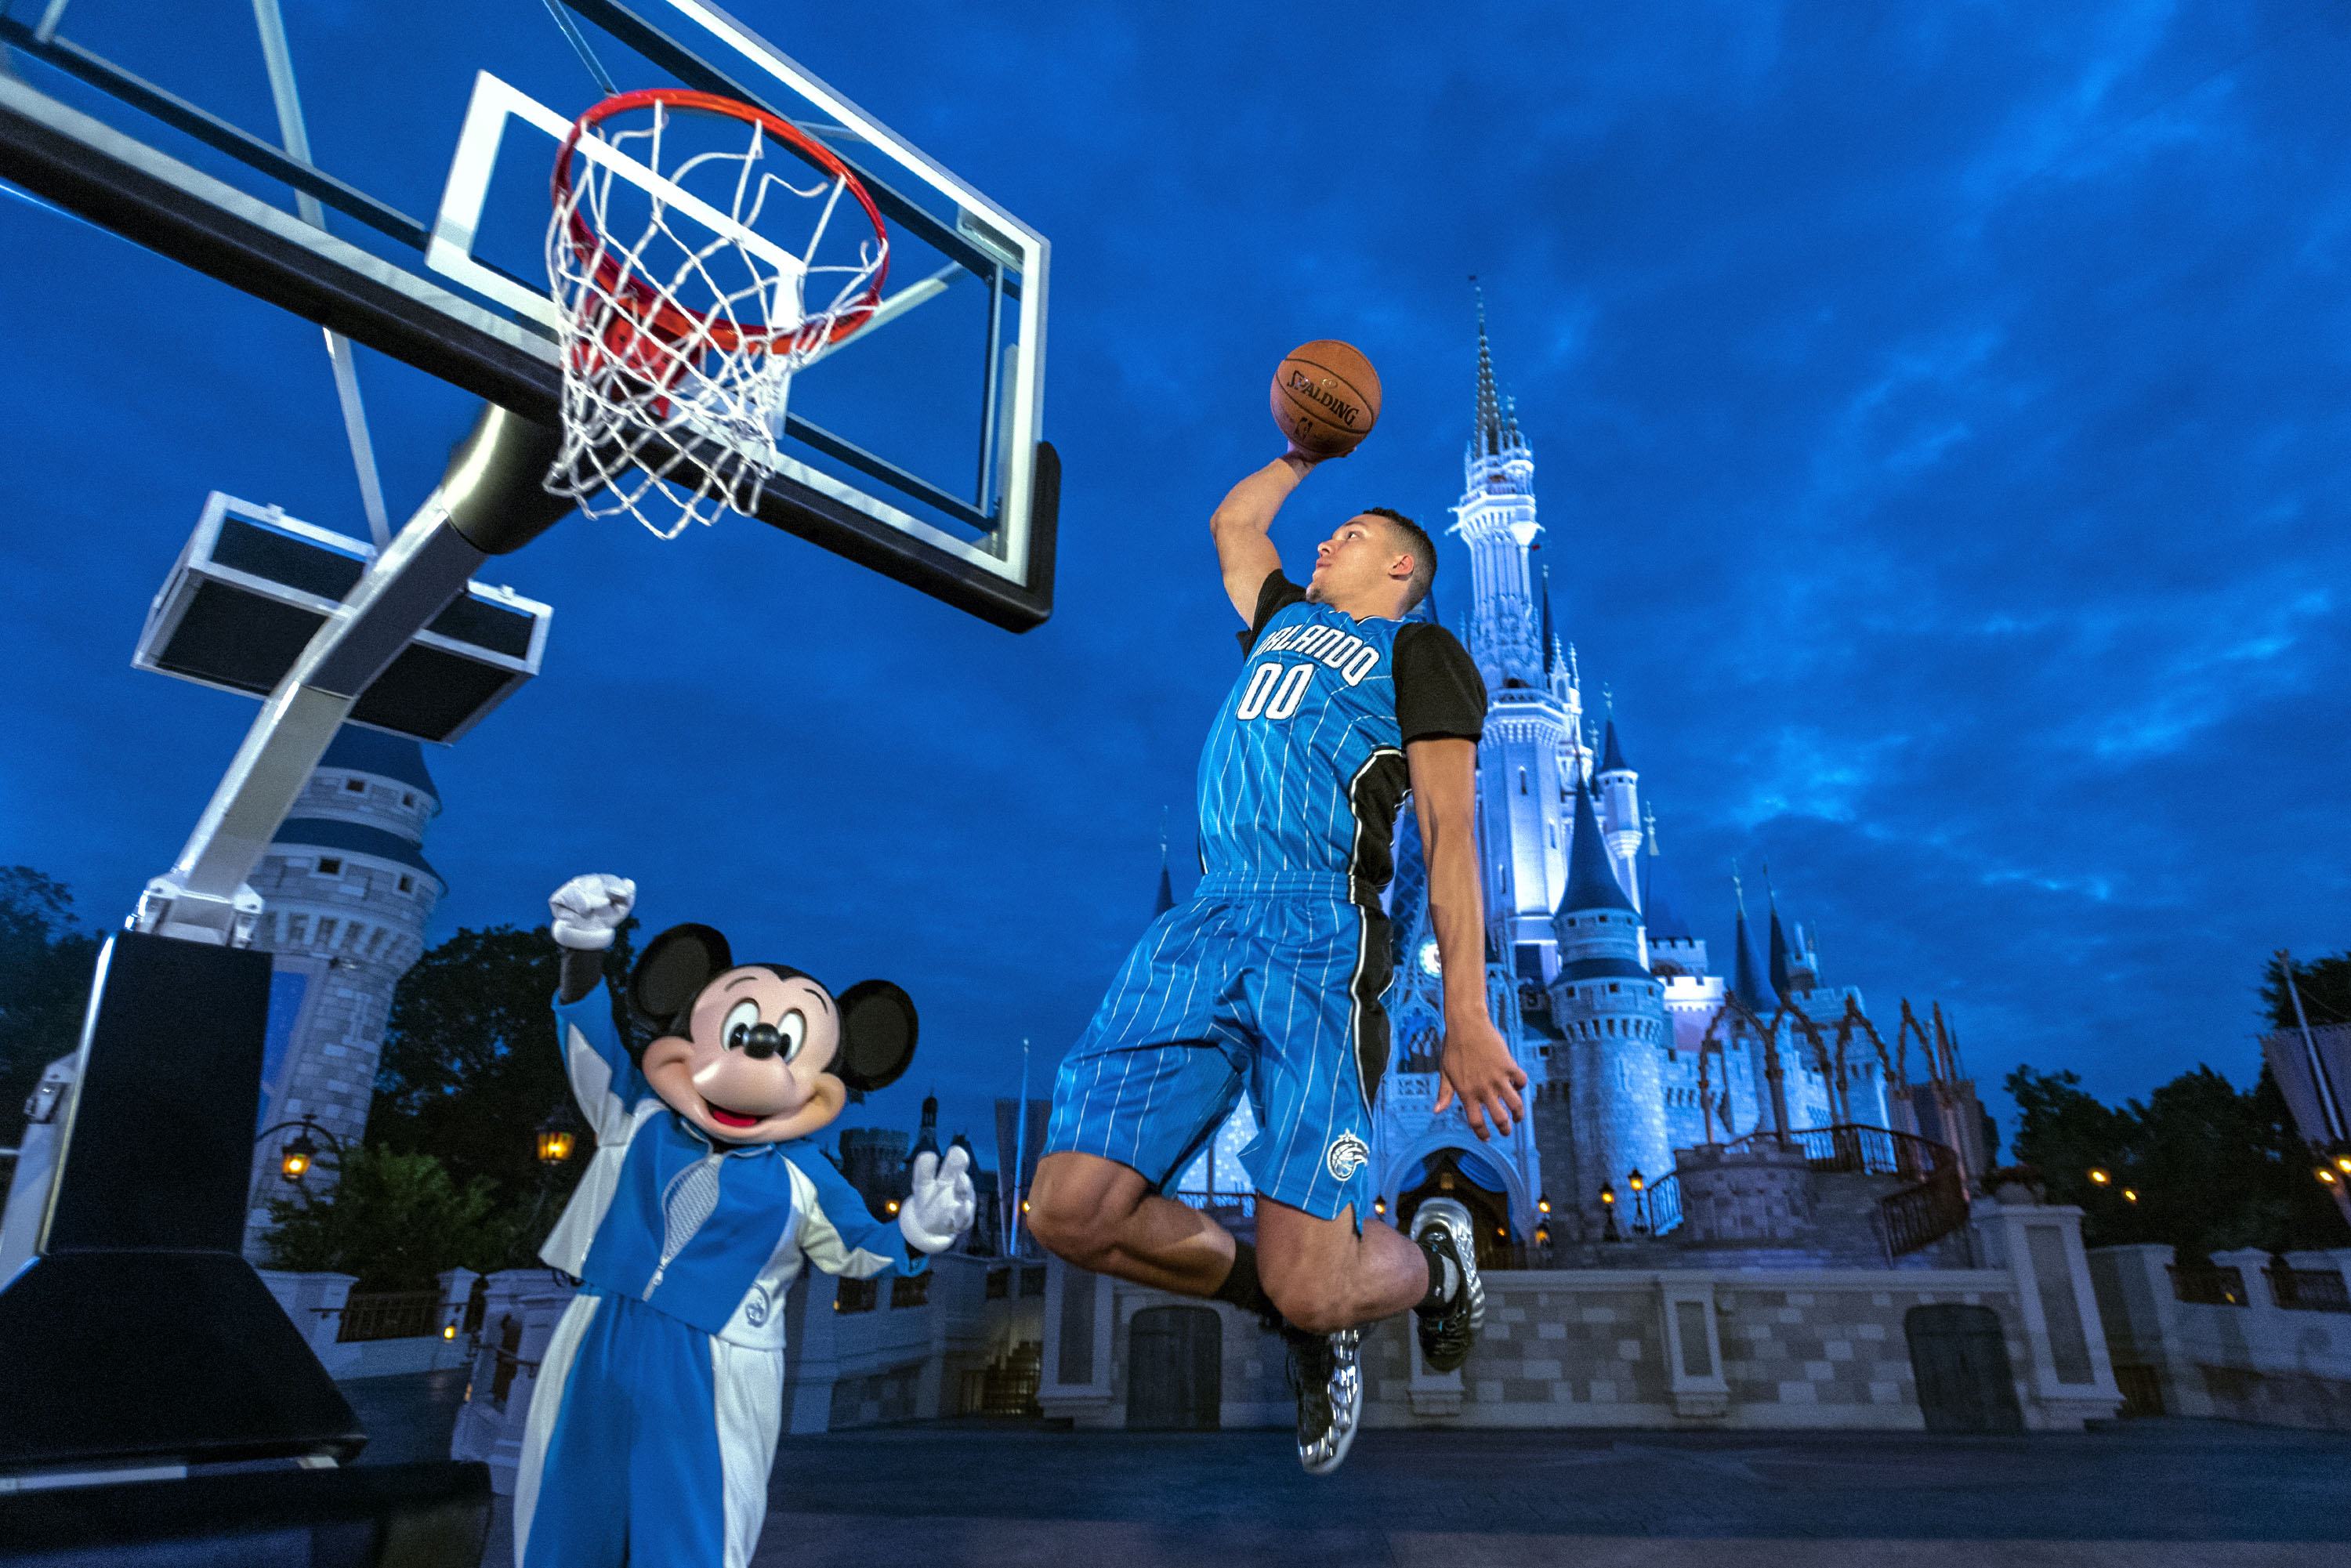 Walt Disney World Resort Orlando Magic jersey sponsorship